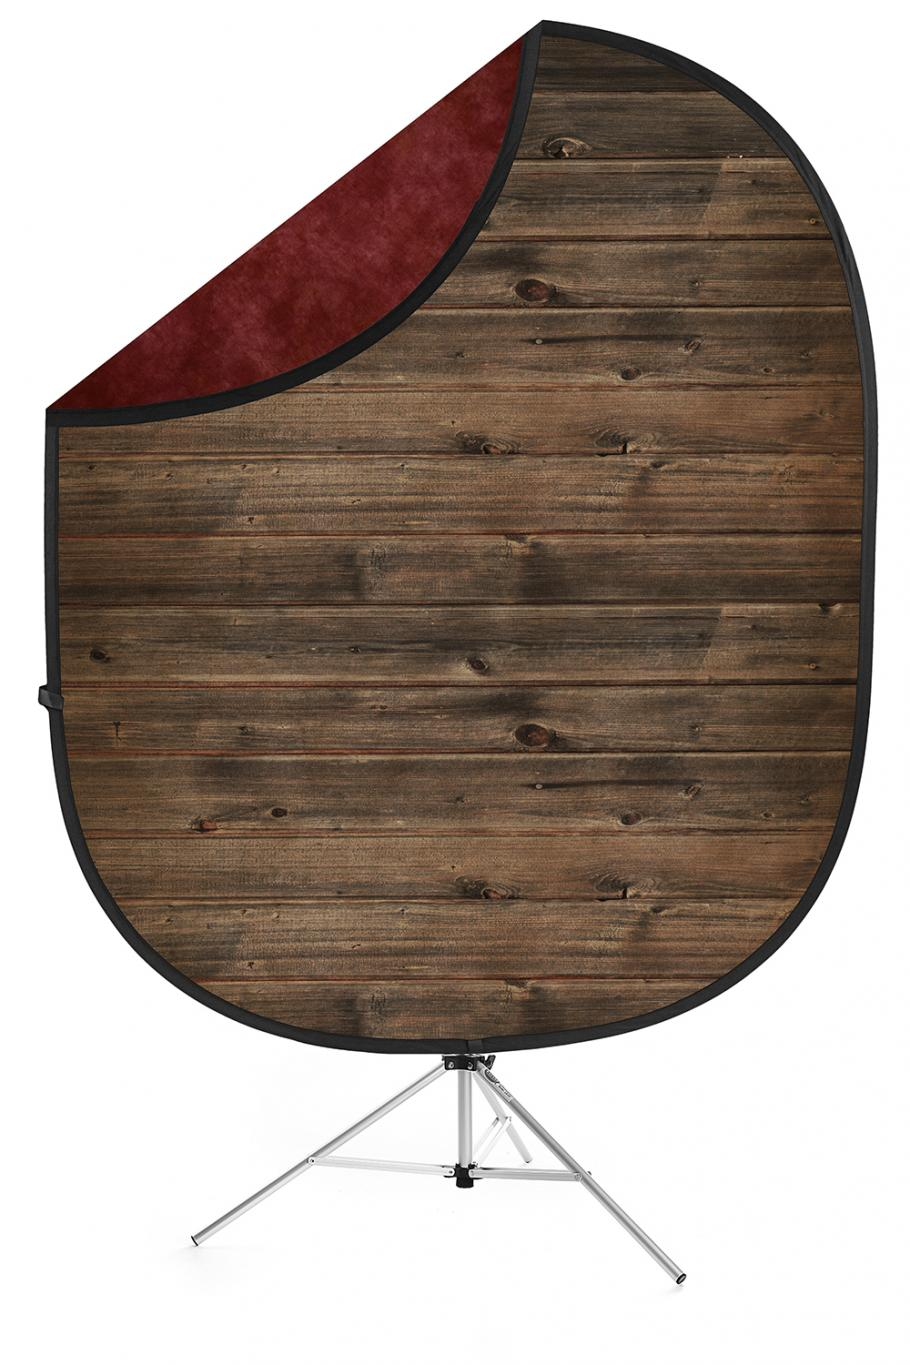 savage rustic planks red collapsible backdrop